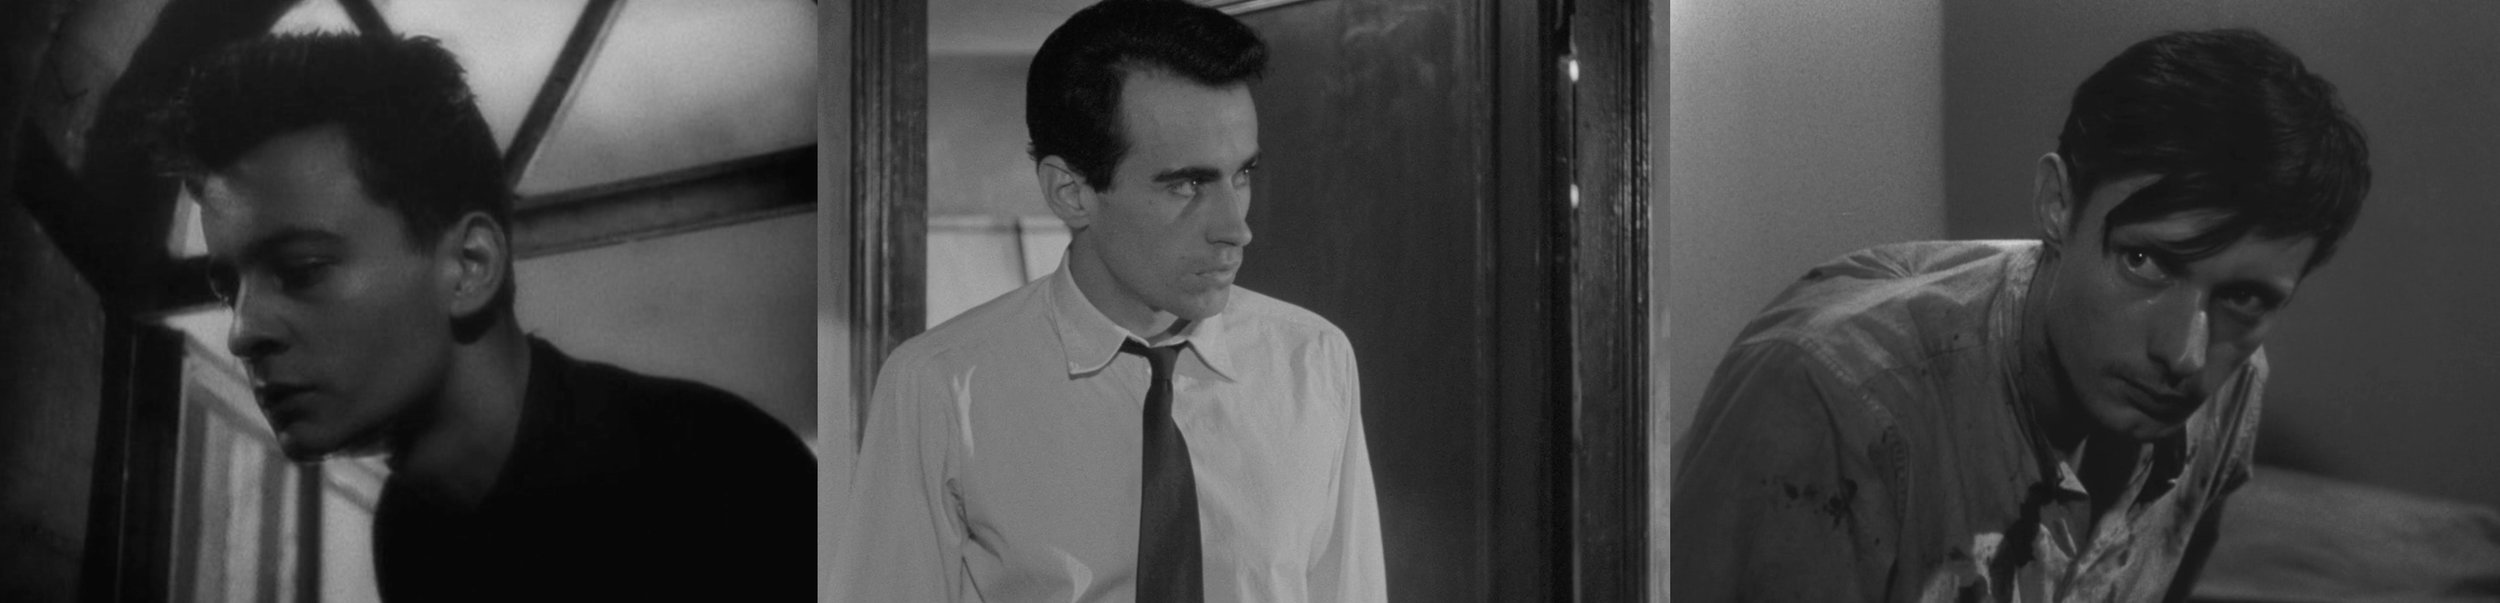 """Unfortunately, our era is a bit like a school of inattention. I want to say that we are taught - that radio, magazines, television teach us to look without seeing and to listen without hearing. But what I want is to teach the opposite: to teach us how to see."" [ Amis du film , April 1960 - from  Bresson on Bresson: Interviews 1943-1983 ]"